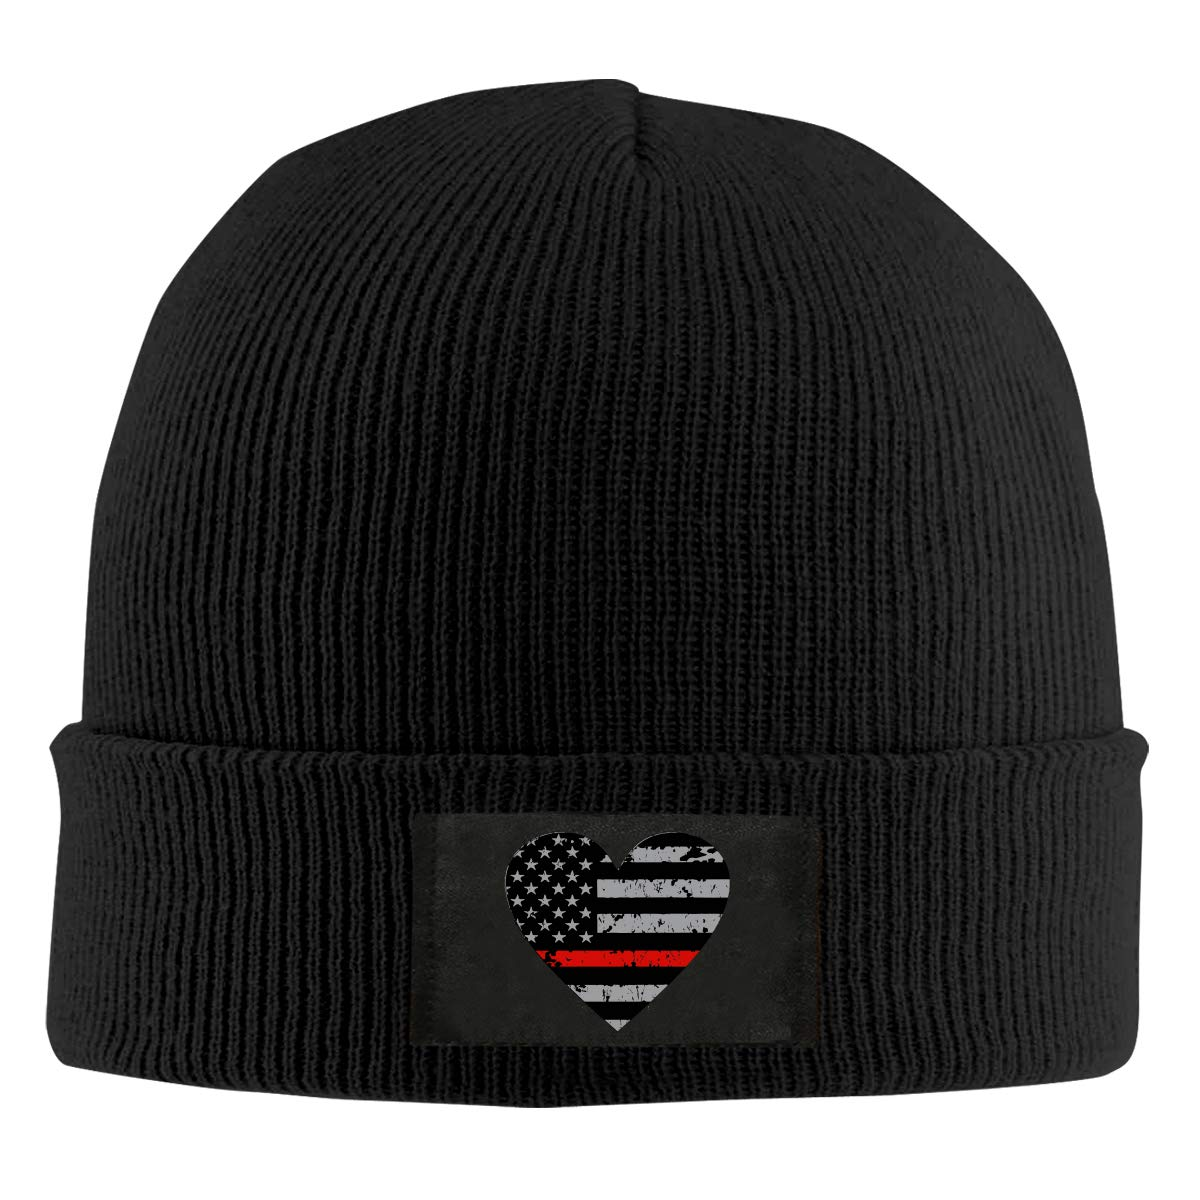 Thin Red Line Heart Firefighter Unisex Knitted Hat Stretchy Skull Cap